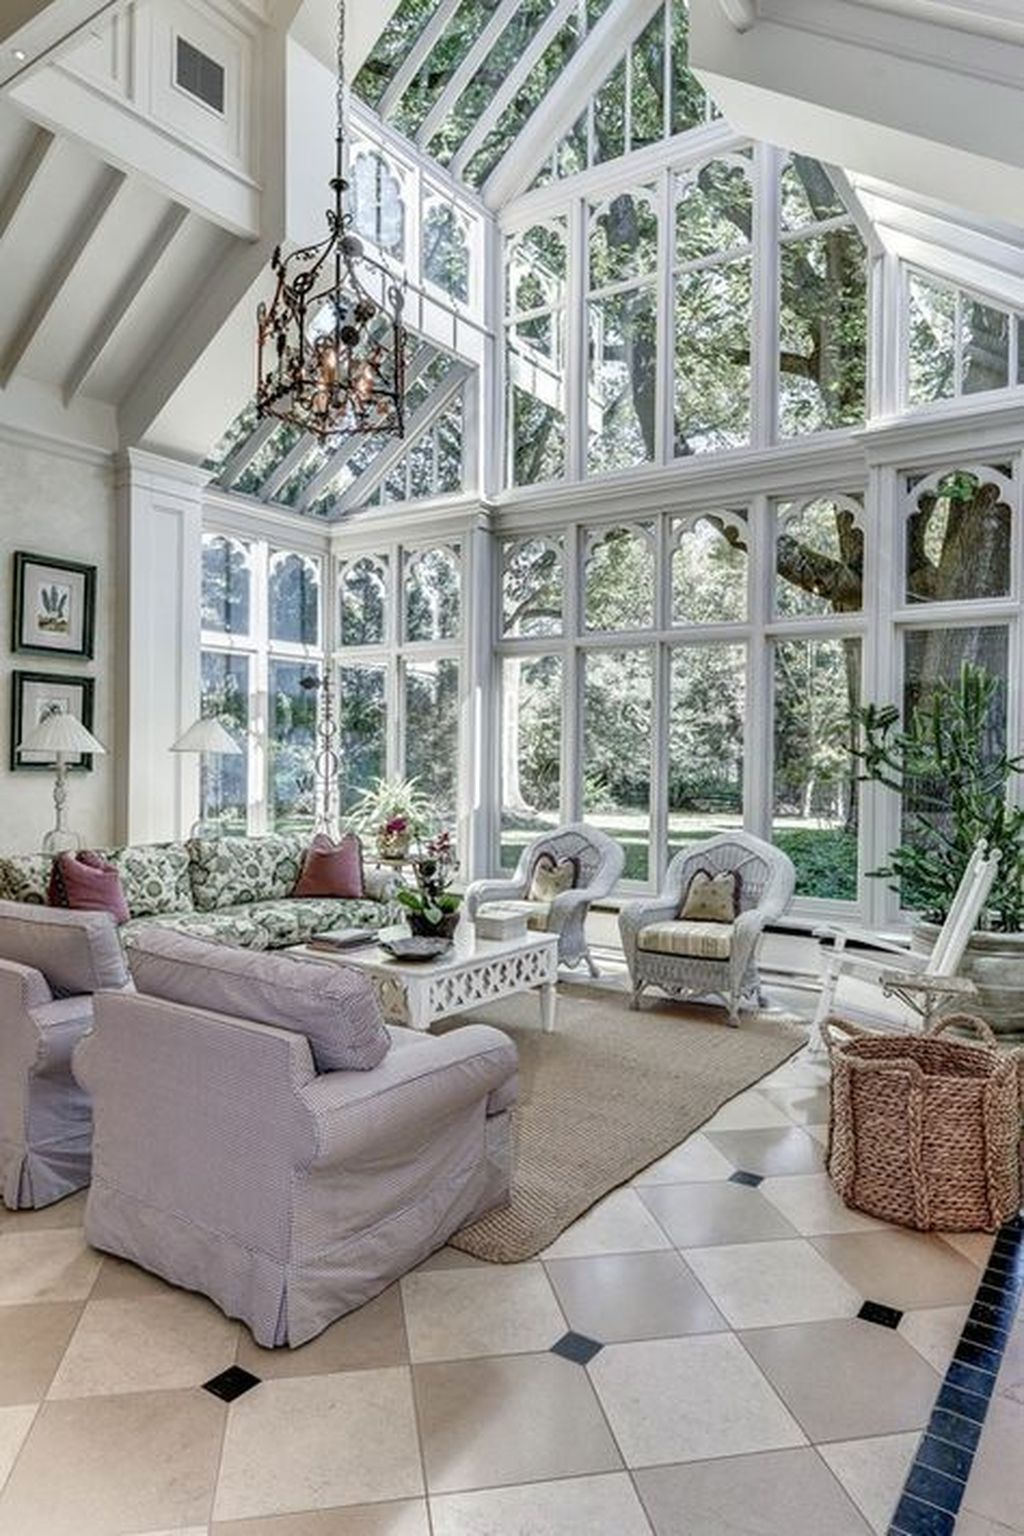 46 Inspiring Traditional Home Decor Ideas To Improve Your Room is part of  - Decors enable you to set up a nineteenth century room in a 21st century block building  The character and the […]